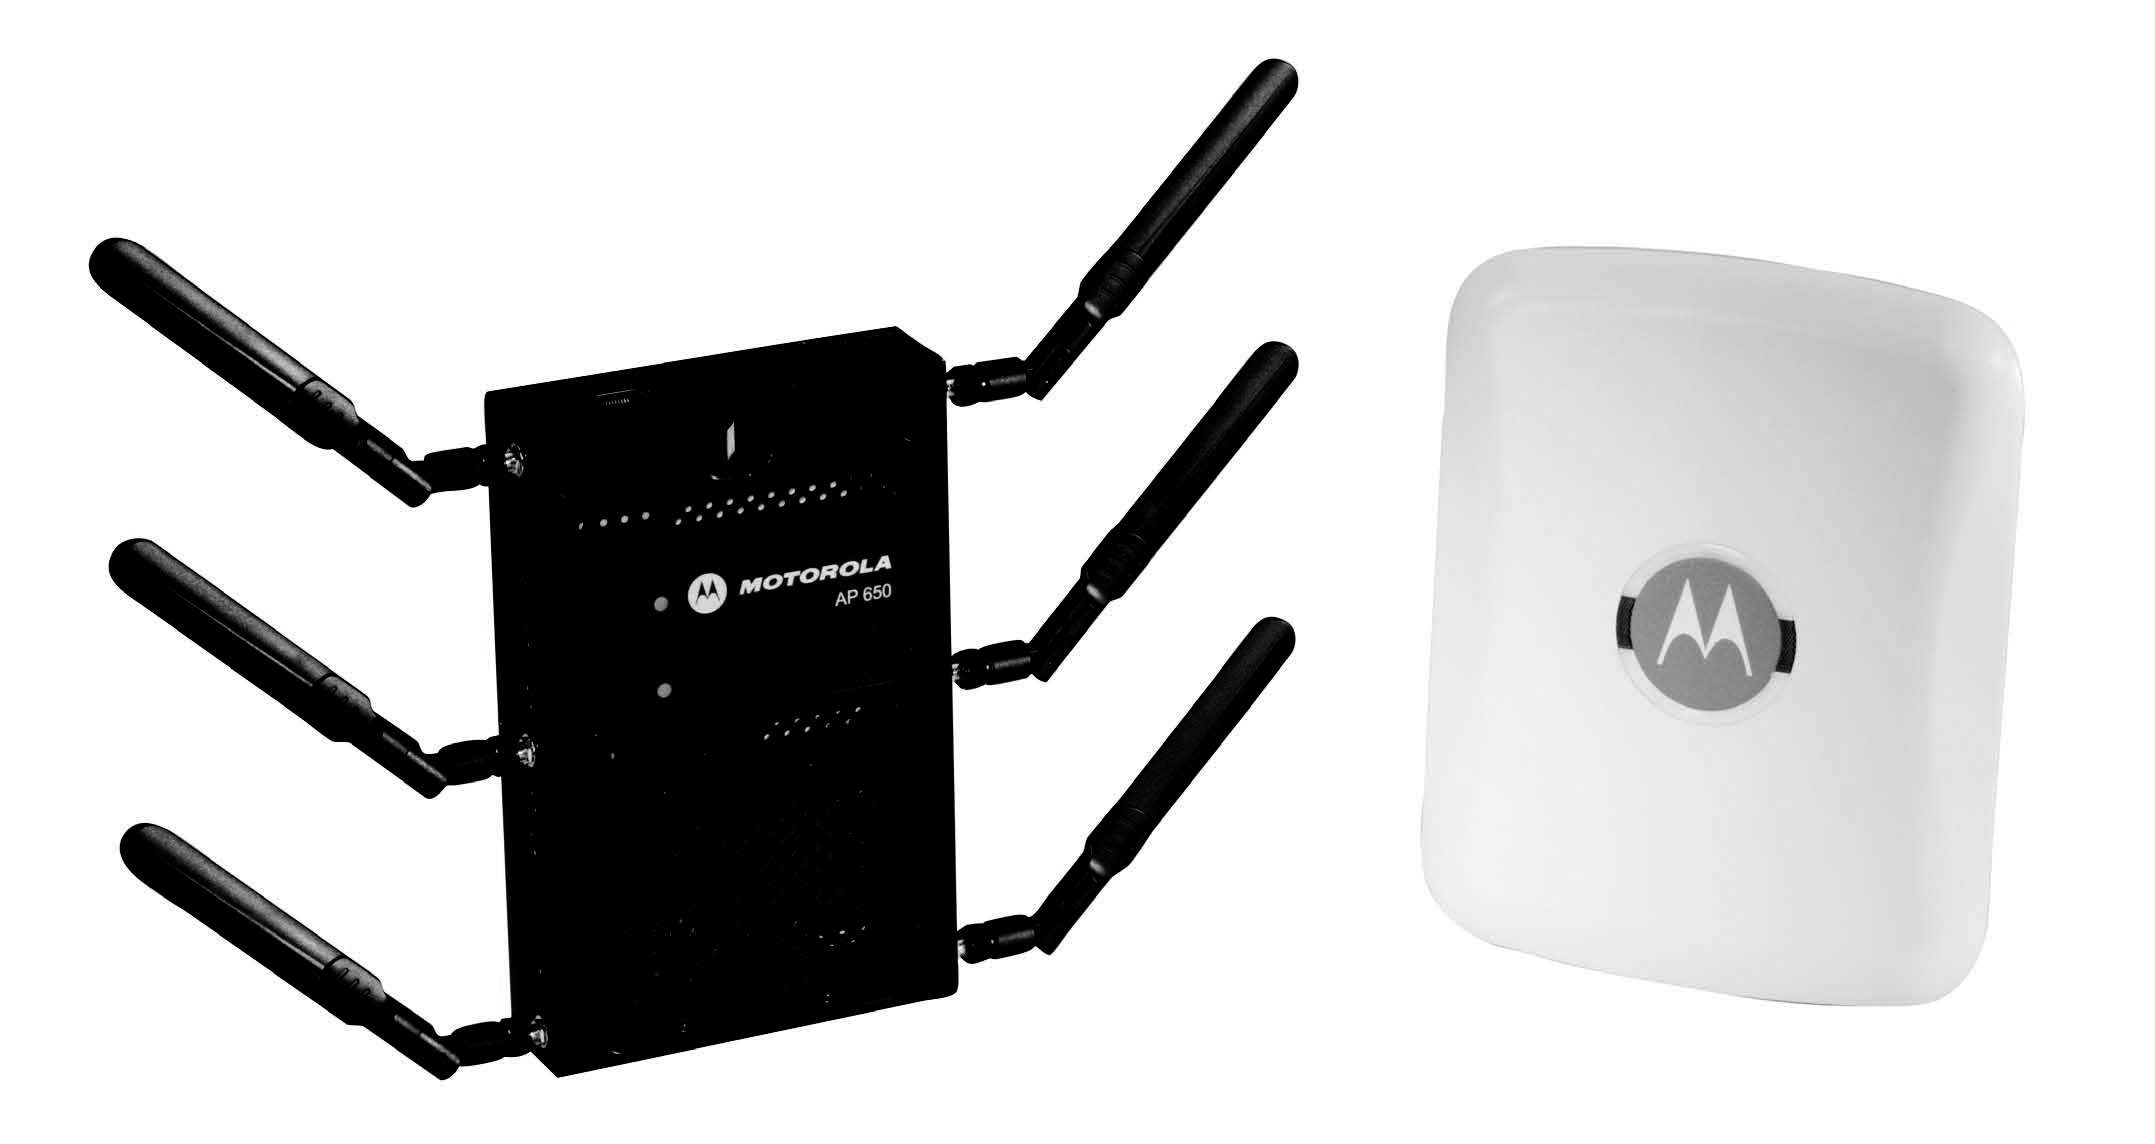 AP650 Wireless Access Point